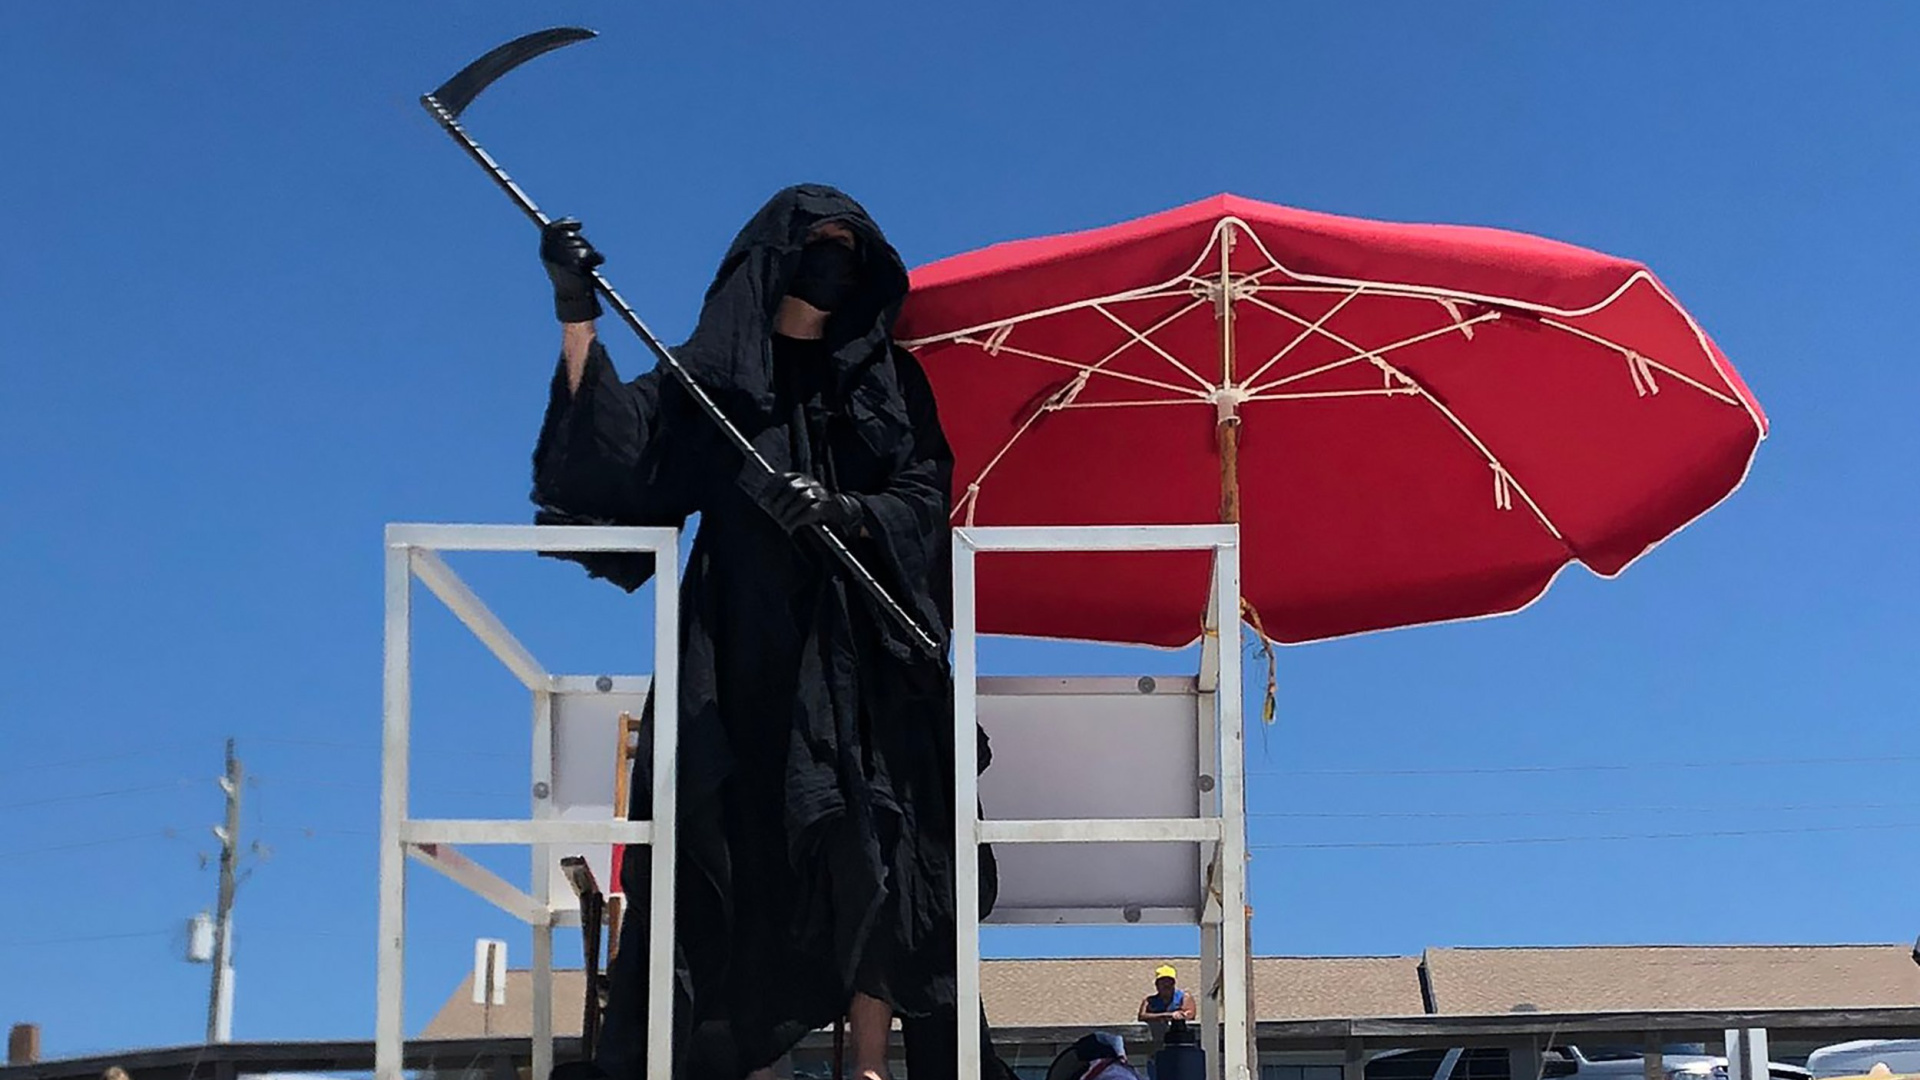 Daniel Uhlfelder is seem dressed as the Grim Reaper at a Florida beach. (Daniel Uhlfelder via CNN)